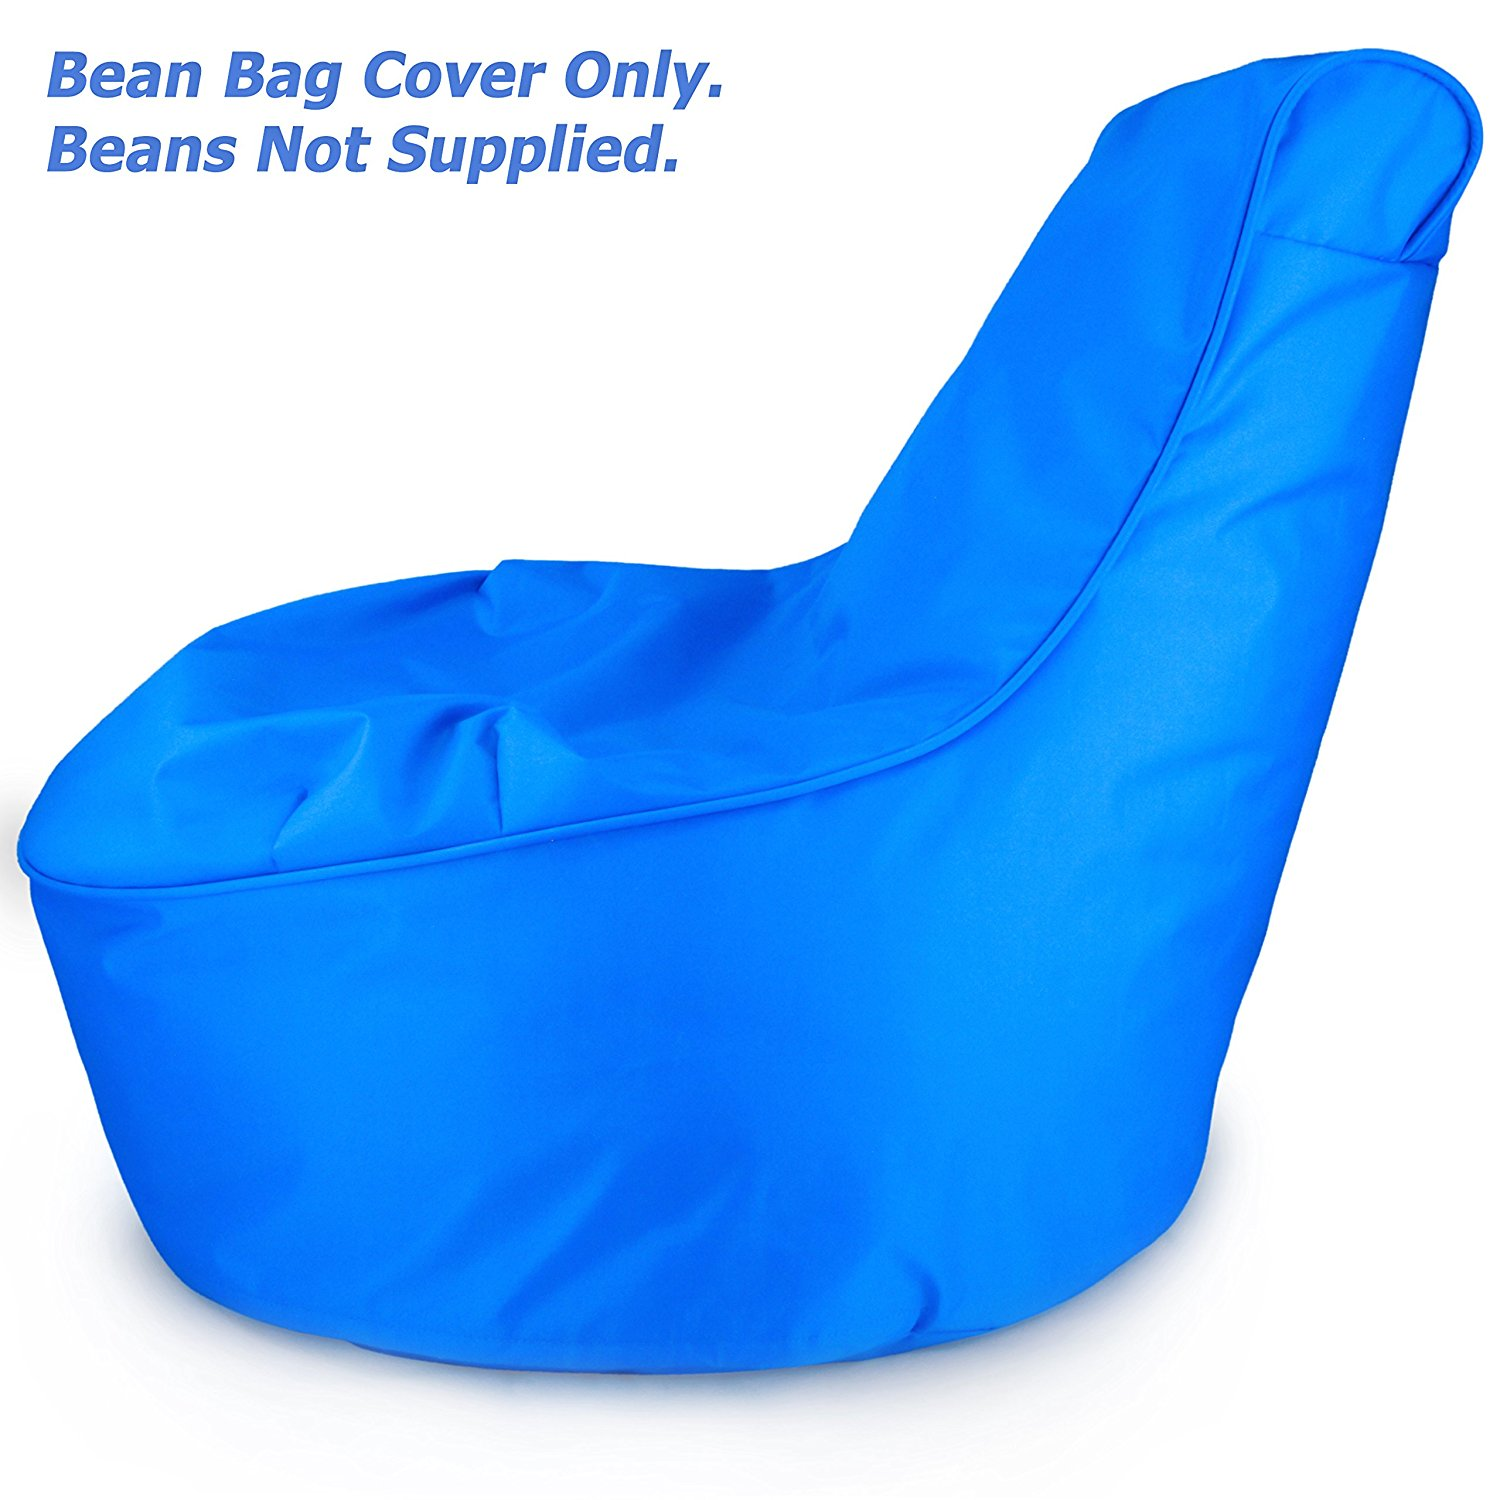 Bean Bag Chair Cover Comfy Kids Bean Bag Chair Cover Only Electric Blue